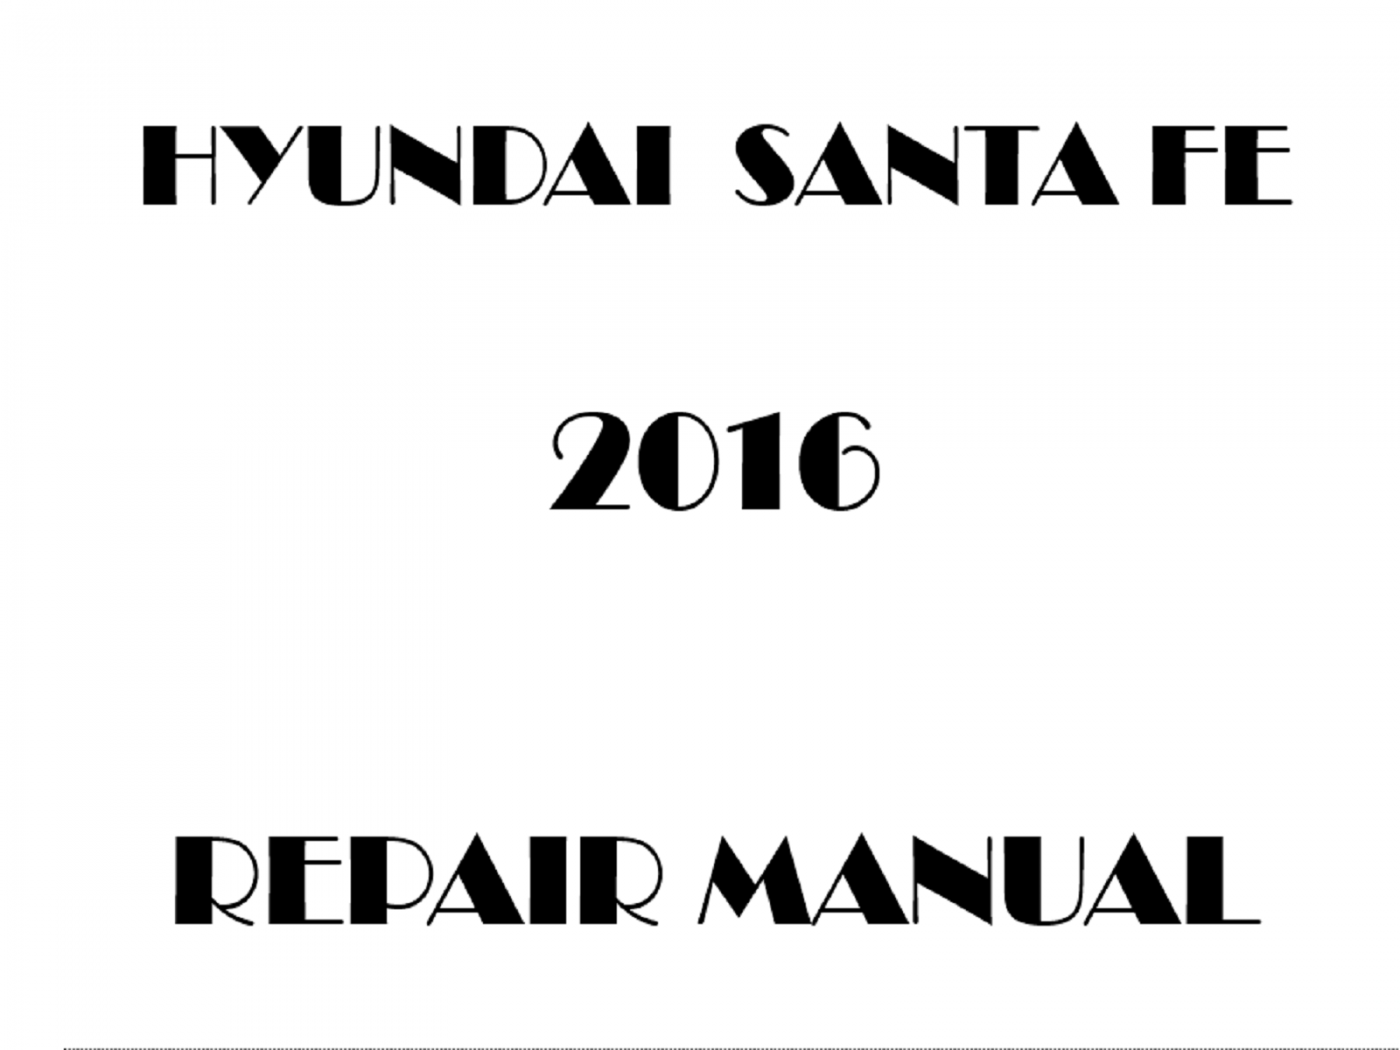 2016 Hyundai Santa Fe repair manual